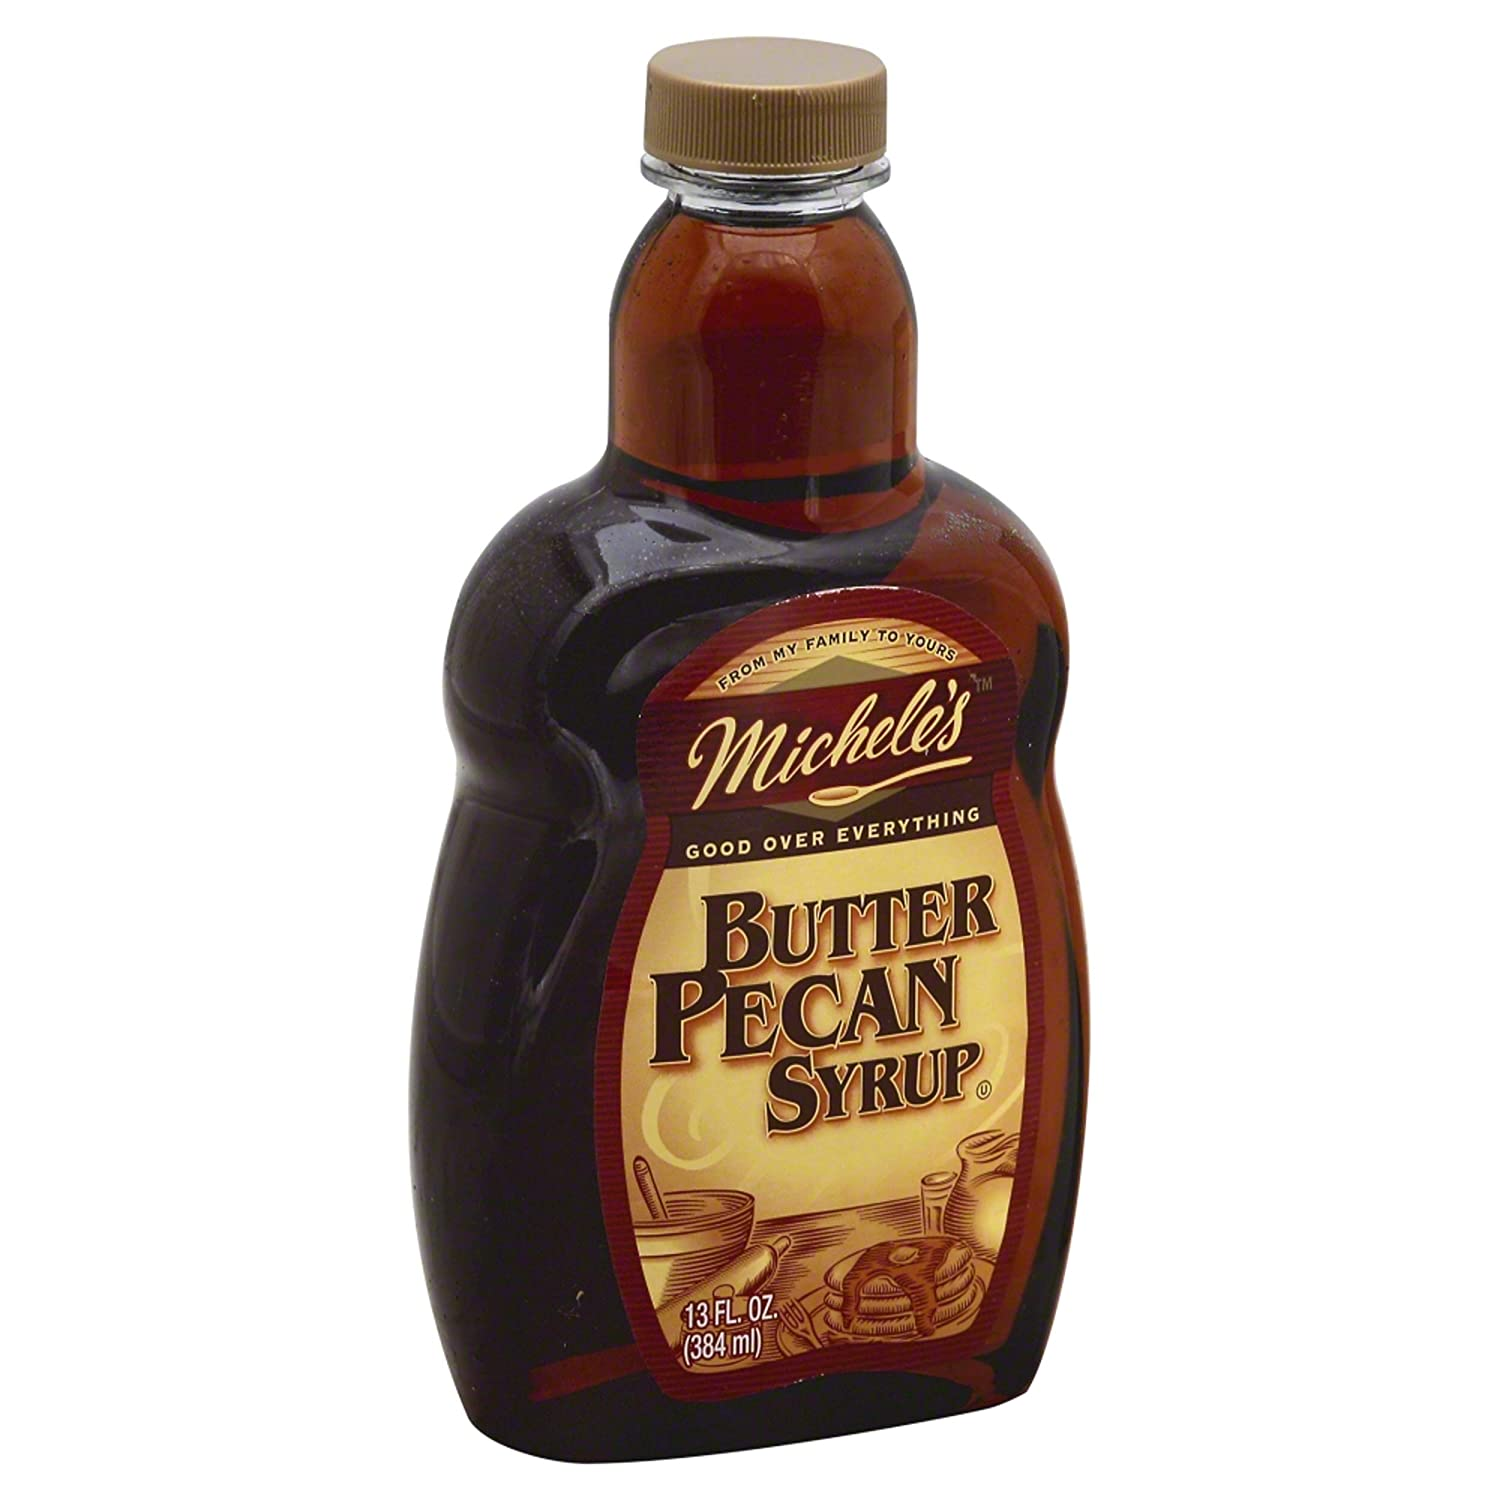 Michelles, Syrup Butter Pecan, 13 oz